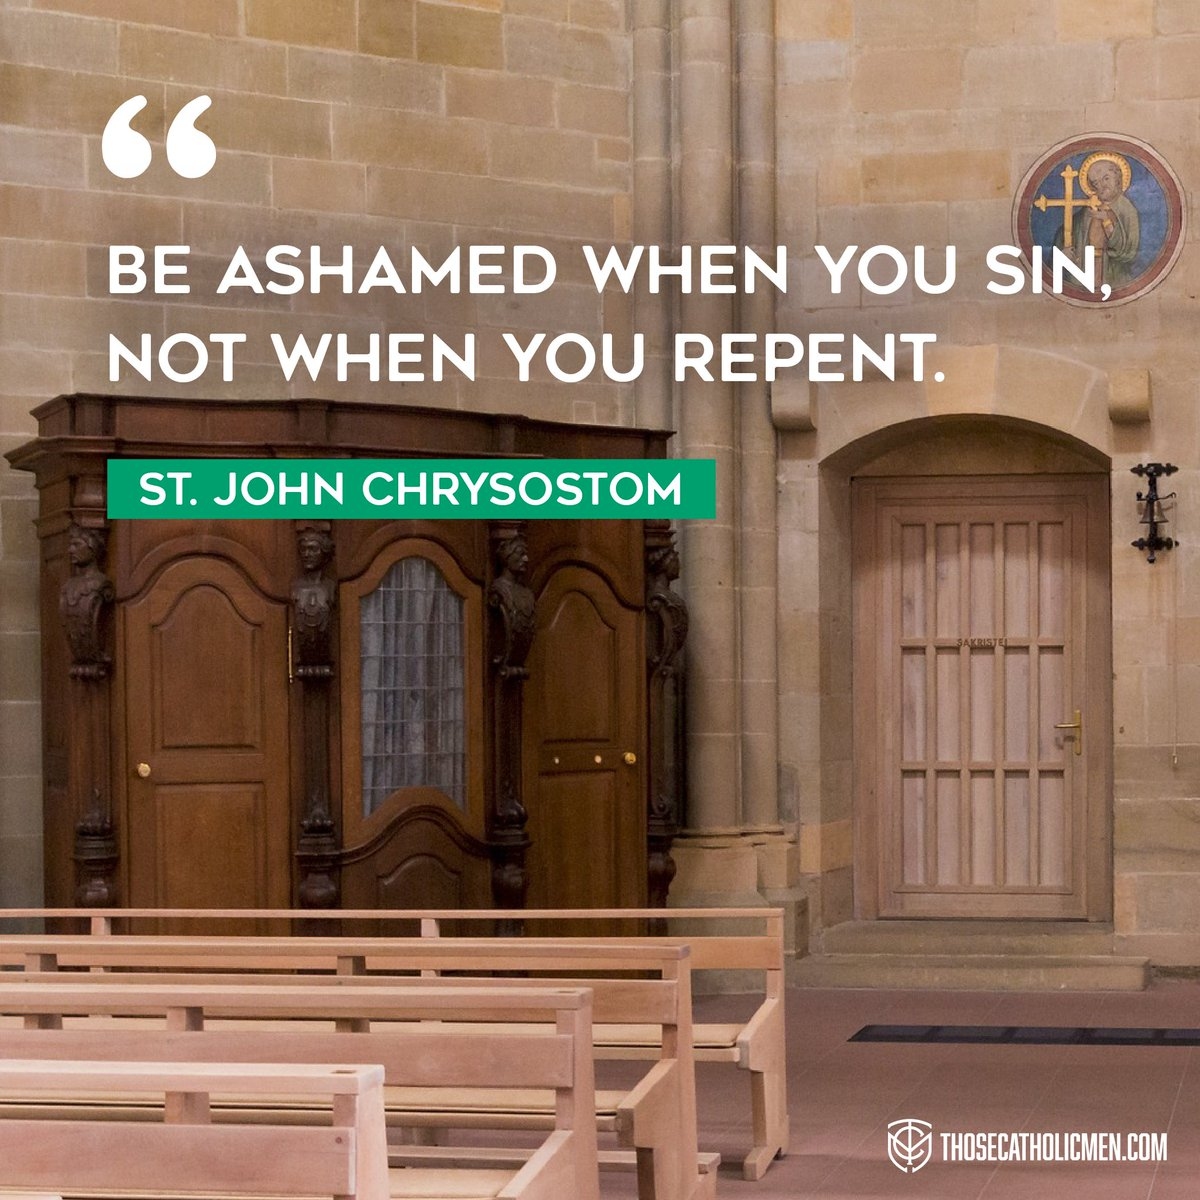 Hey there sinners! Go to Confession. #Mercy #Confession #Repent #Love #Sin<br>http://pic.twitter.com/MnMUBqkbCG